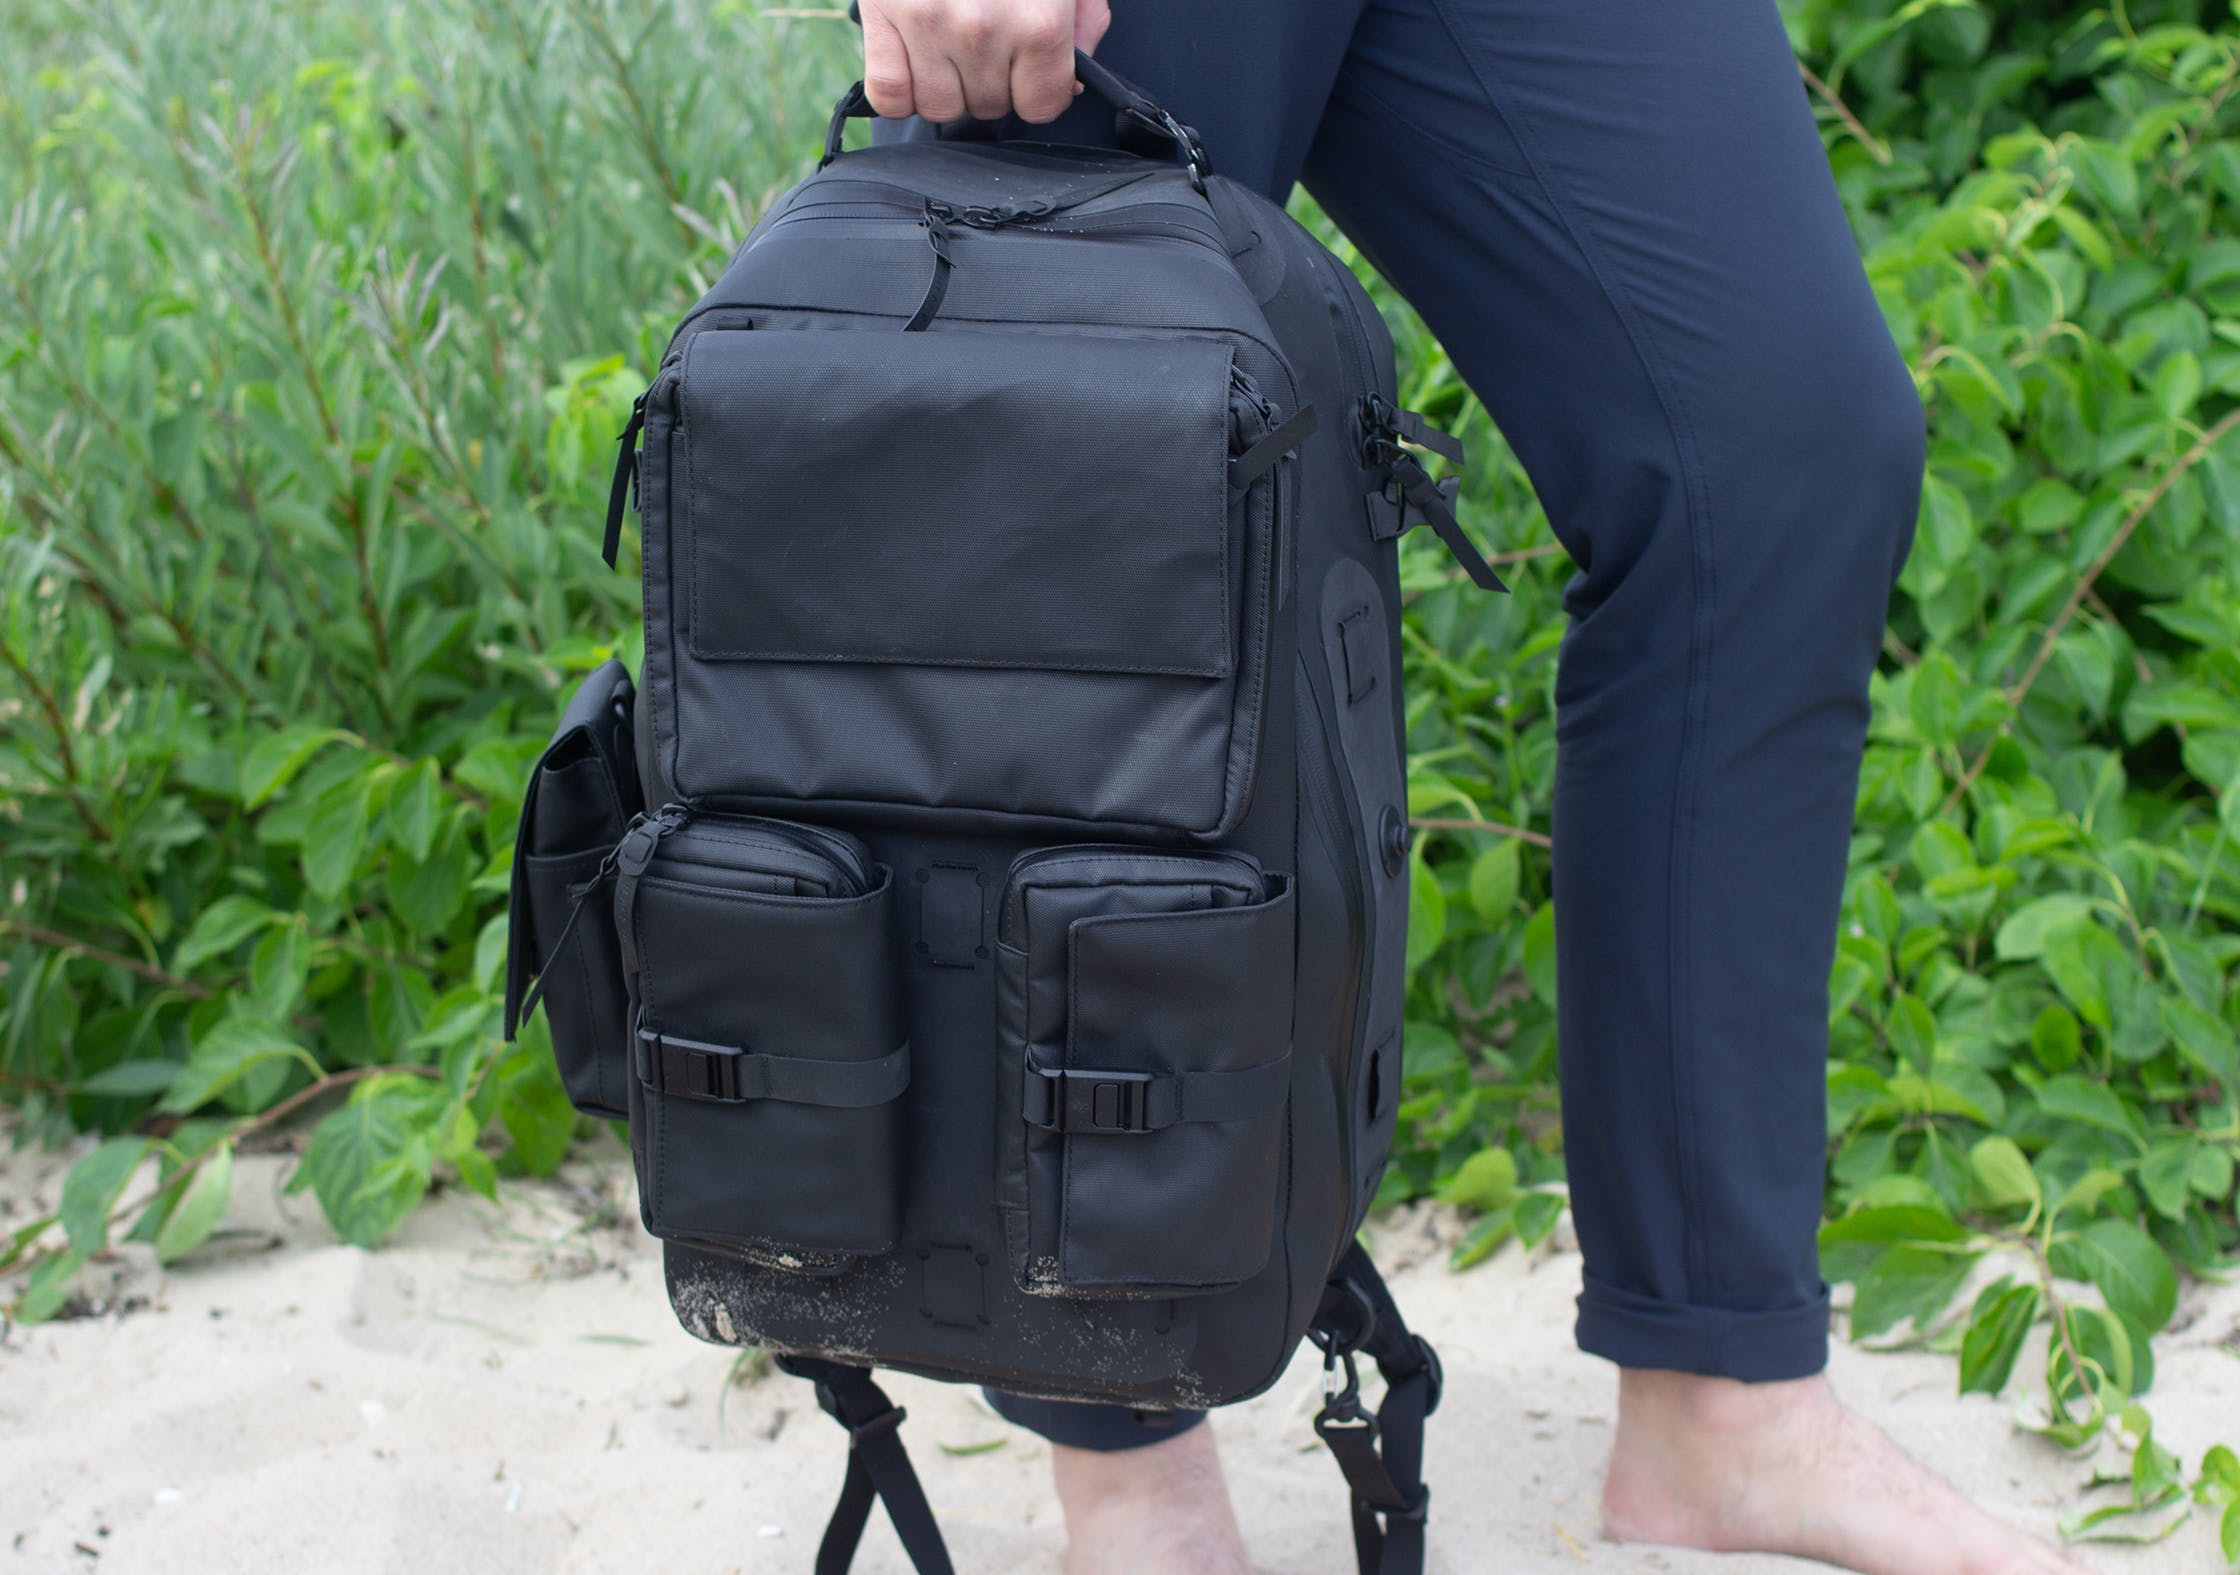 Black Ember Citadel Modular Backpack In Northern Michigan